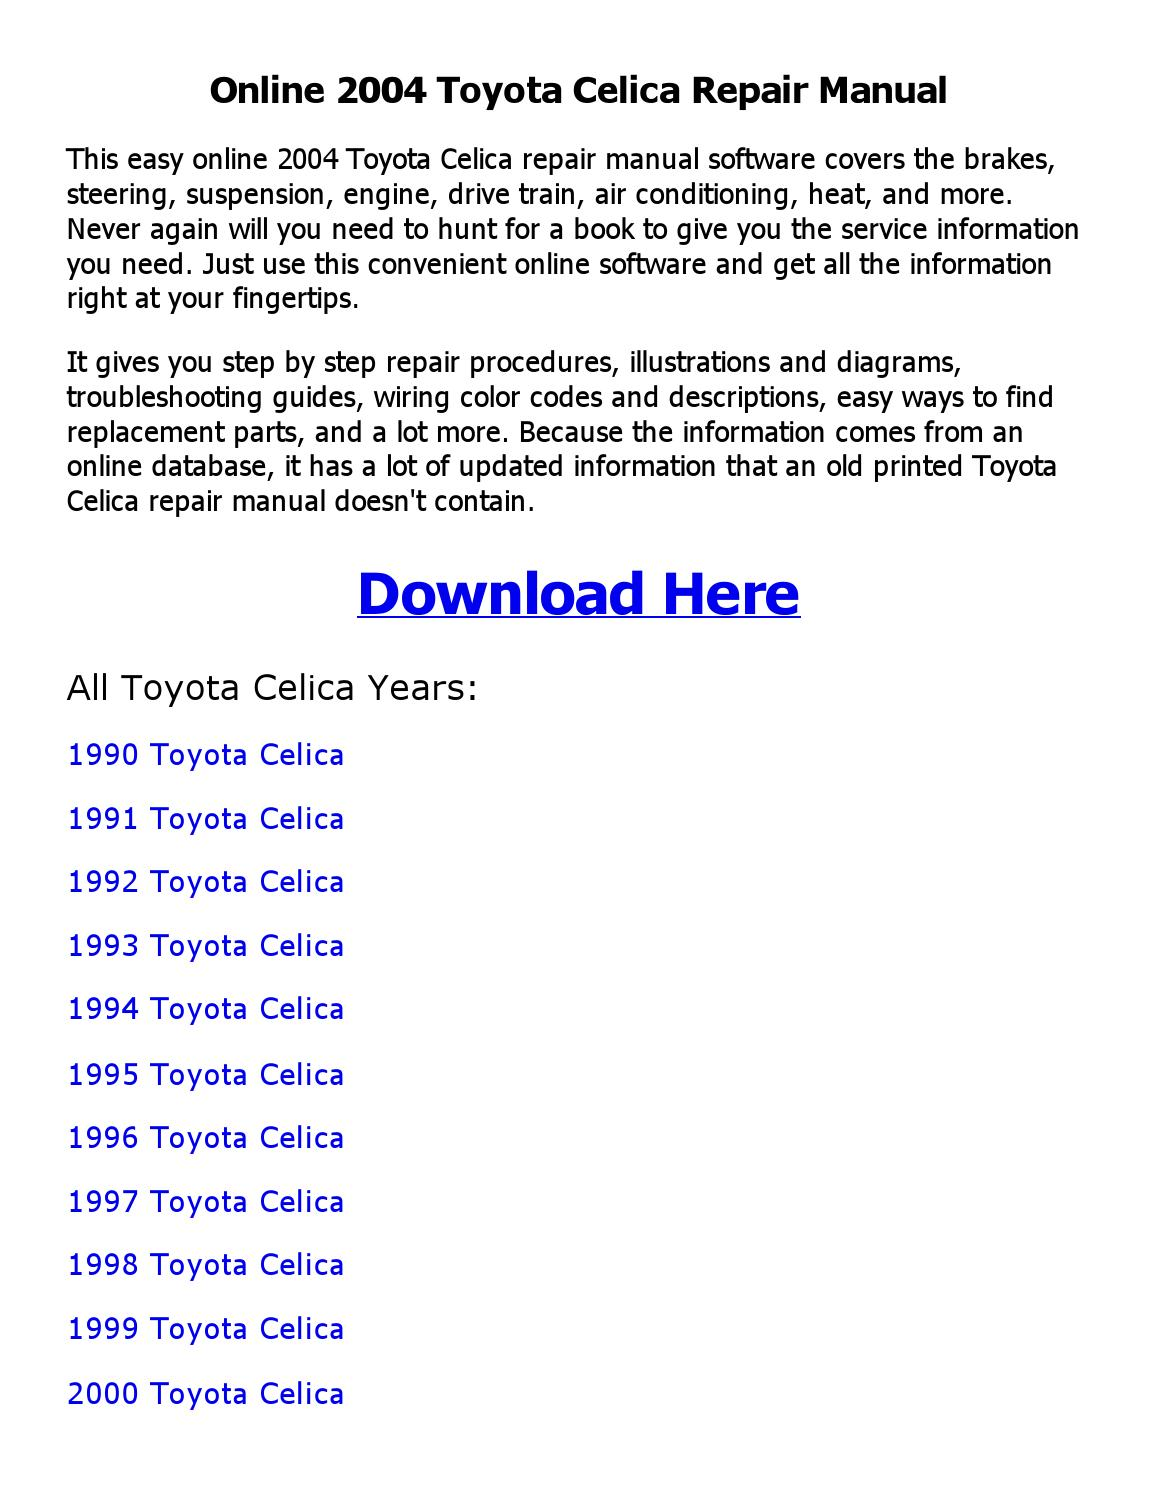 2004 toyota celica repair manual online by shahid issuu wire diagrams 1999 toyota celica gt 1995 toyota celica part diagram wiring schematic #45